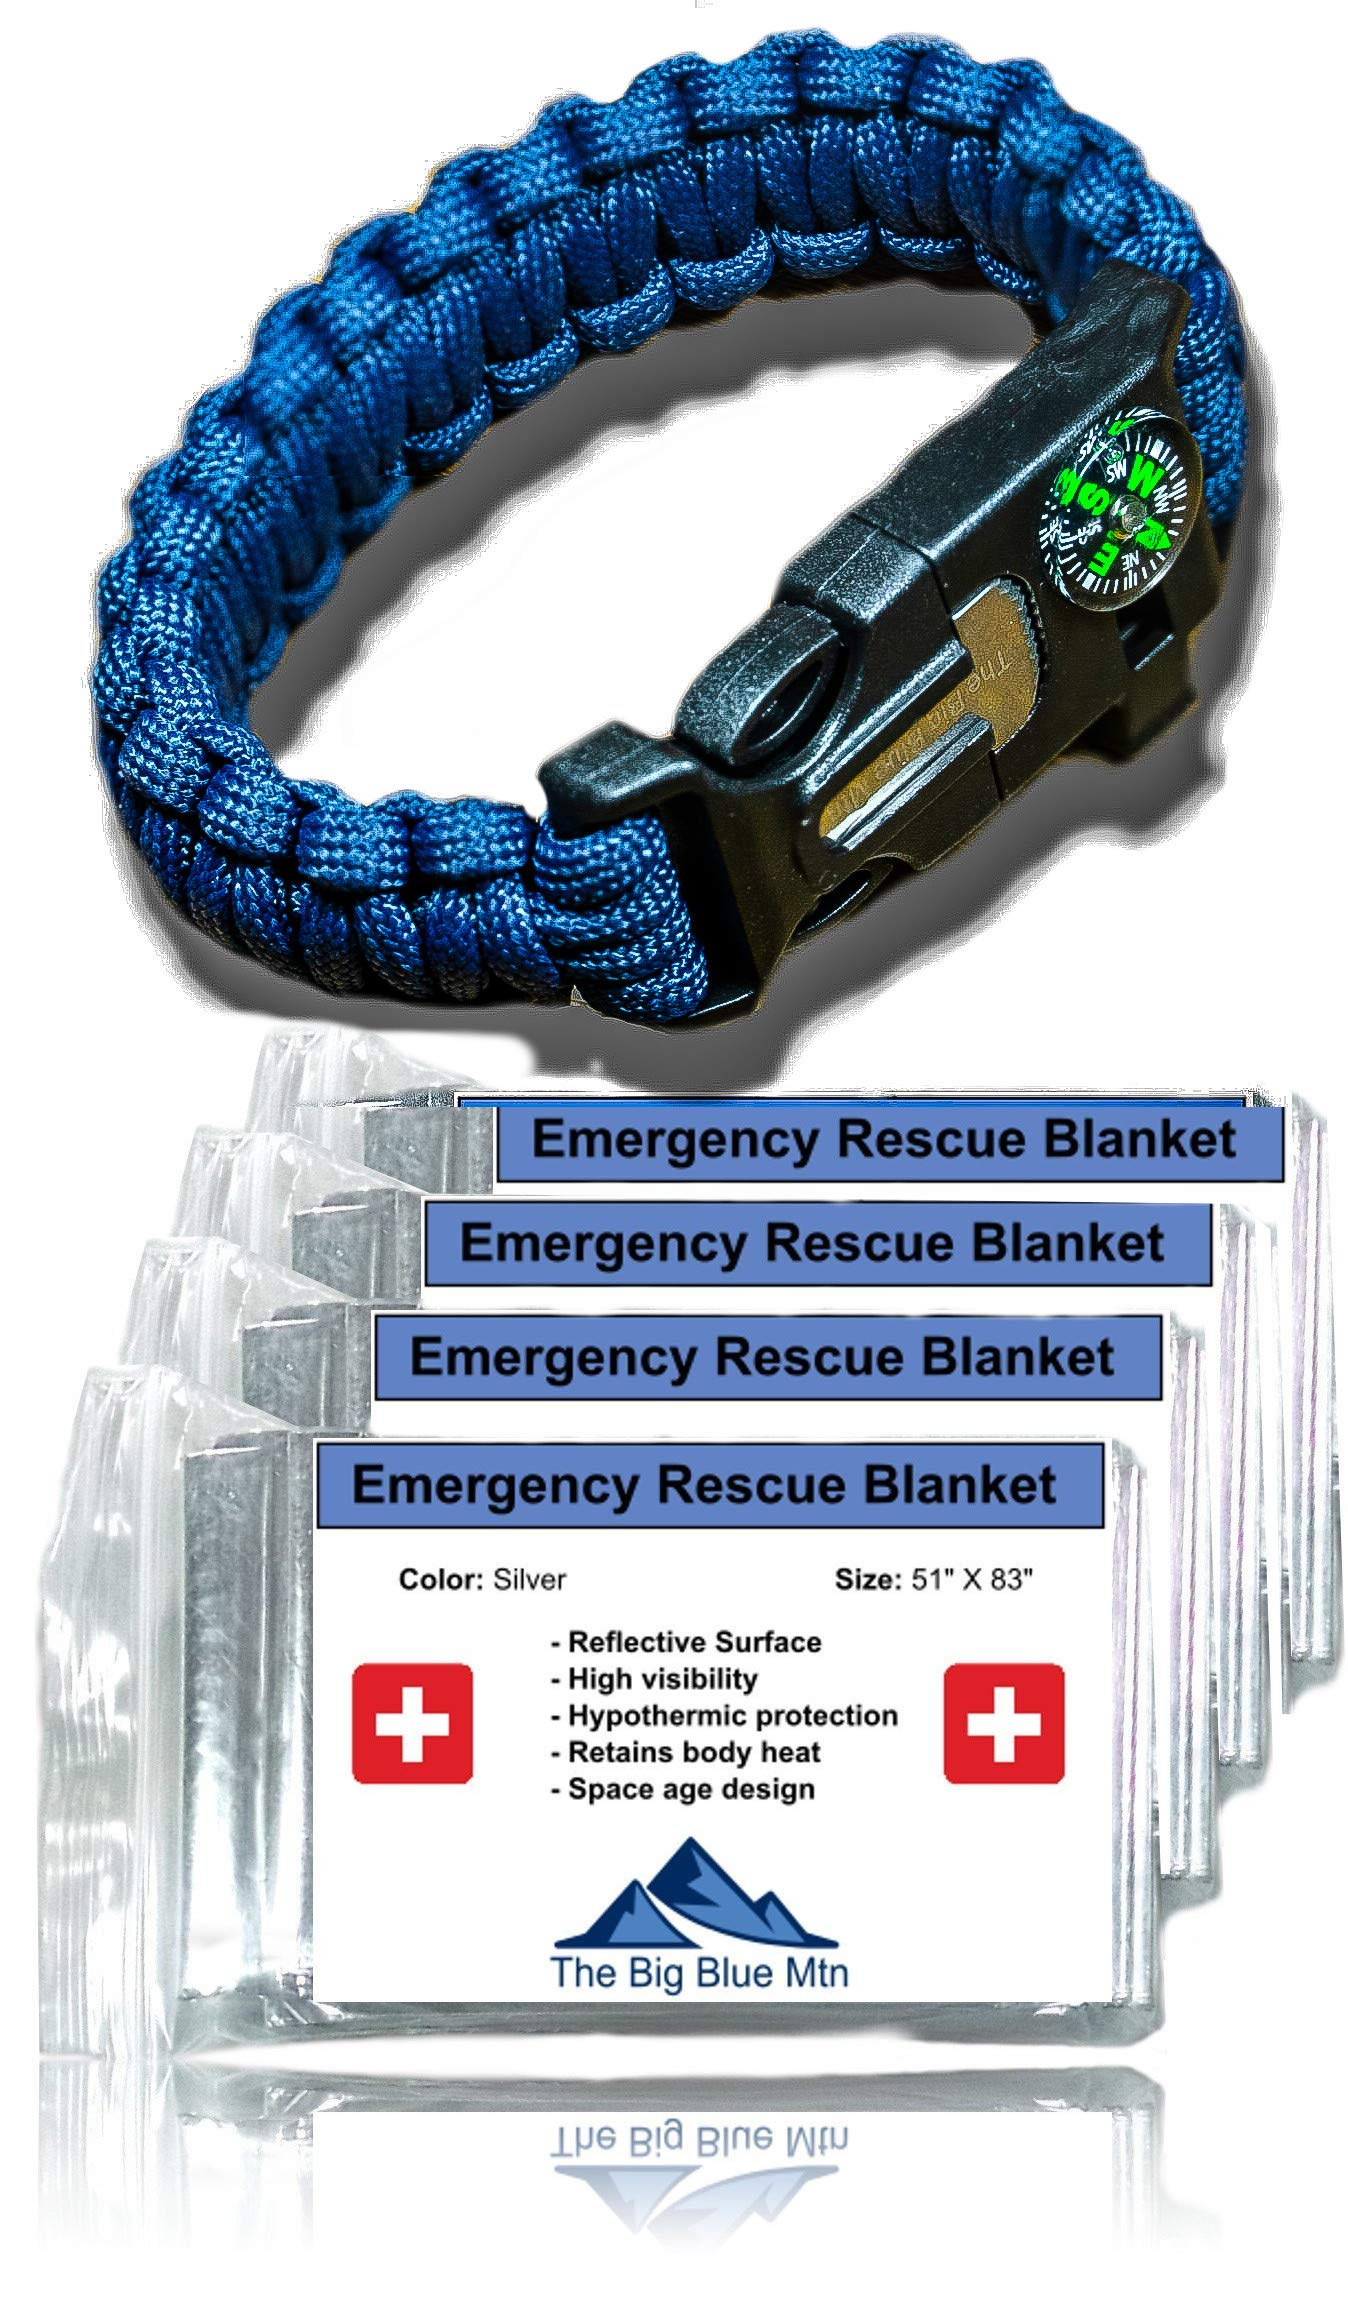 The Big Blue Mtn Emergency Blanket 4 Pack (Silver) + Paracord Survival Bracelet (Navy) Mylar Thermal Foil Space Blankets for Outdoor Camping Hiking Gear